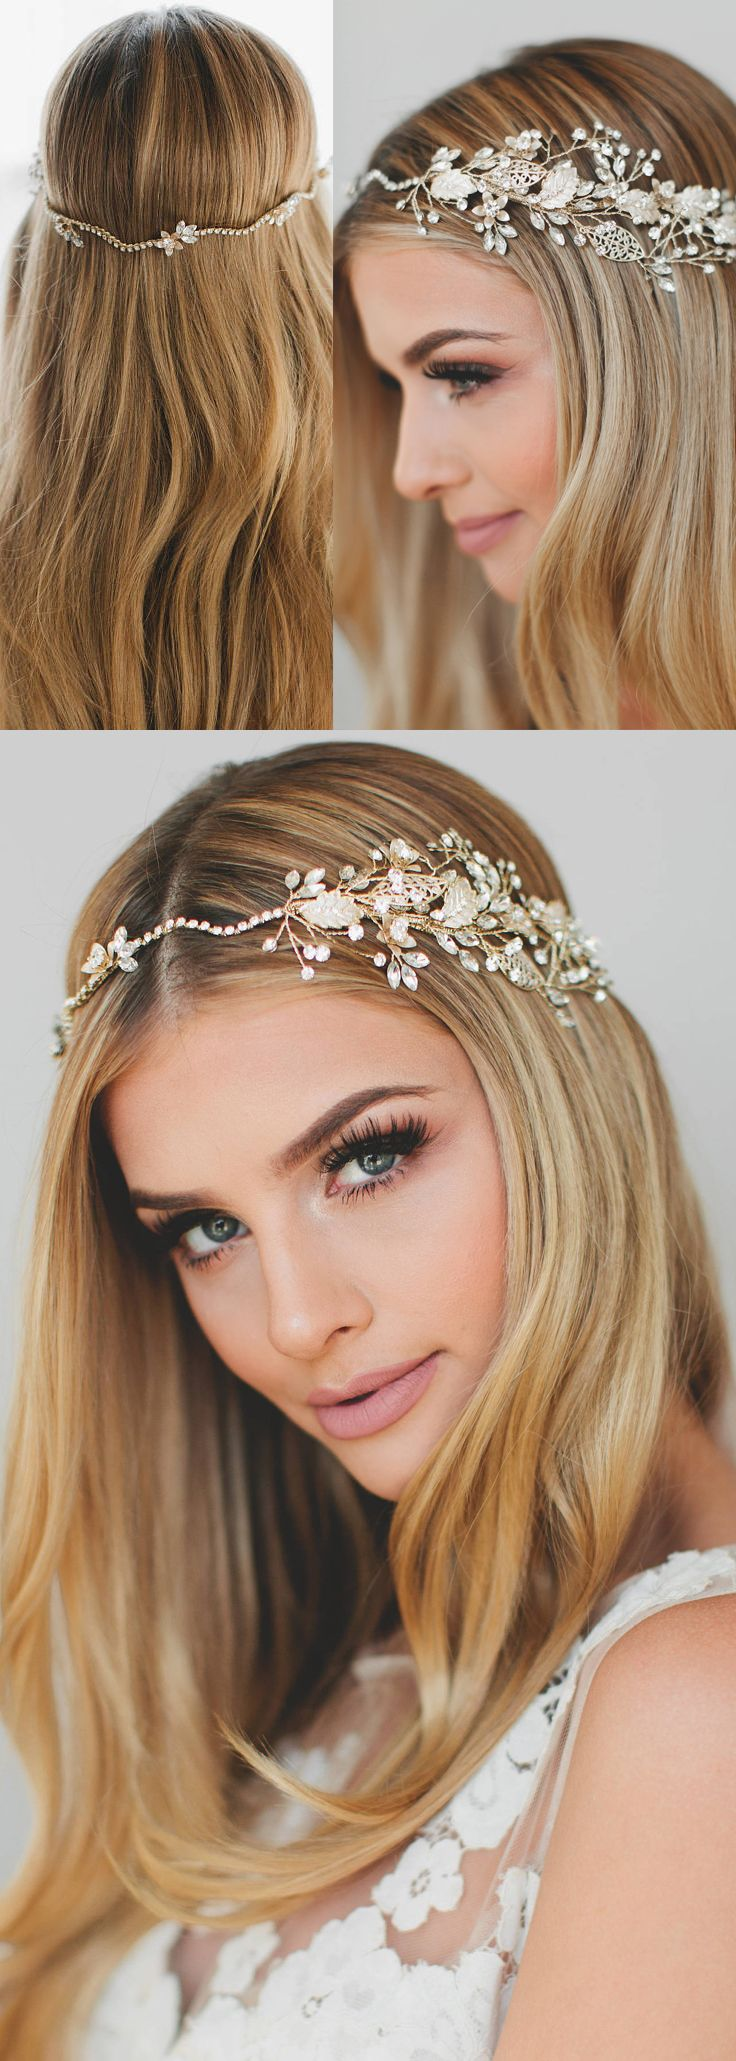 This lovely bridal wreath is packed with gilded leaves and glistening Swarovski crystals. This soft bohemian bridal crown is gorgeous on its own or coupled with a veil as shown in the last two photos. Bridal Crystal Crown, Bridal Gold Crown, Bridal Halo Headband, Bridal Halo Crown, Crystal Hair Vine, Gold Tiara Headband, Boho Circlet. #wedding #fallwedding #winterwedding #bride #bridalwear #mrandmrs #weddingvine #bridalcorsage #weddingcorsage #affiliatelink #bridalaccessories